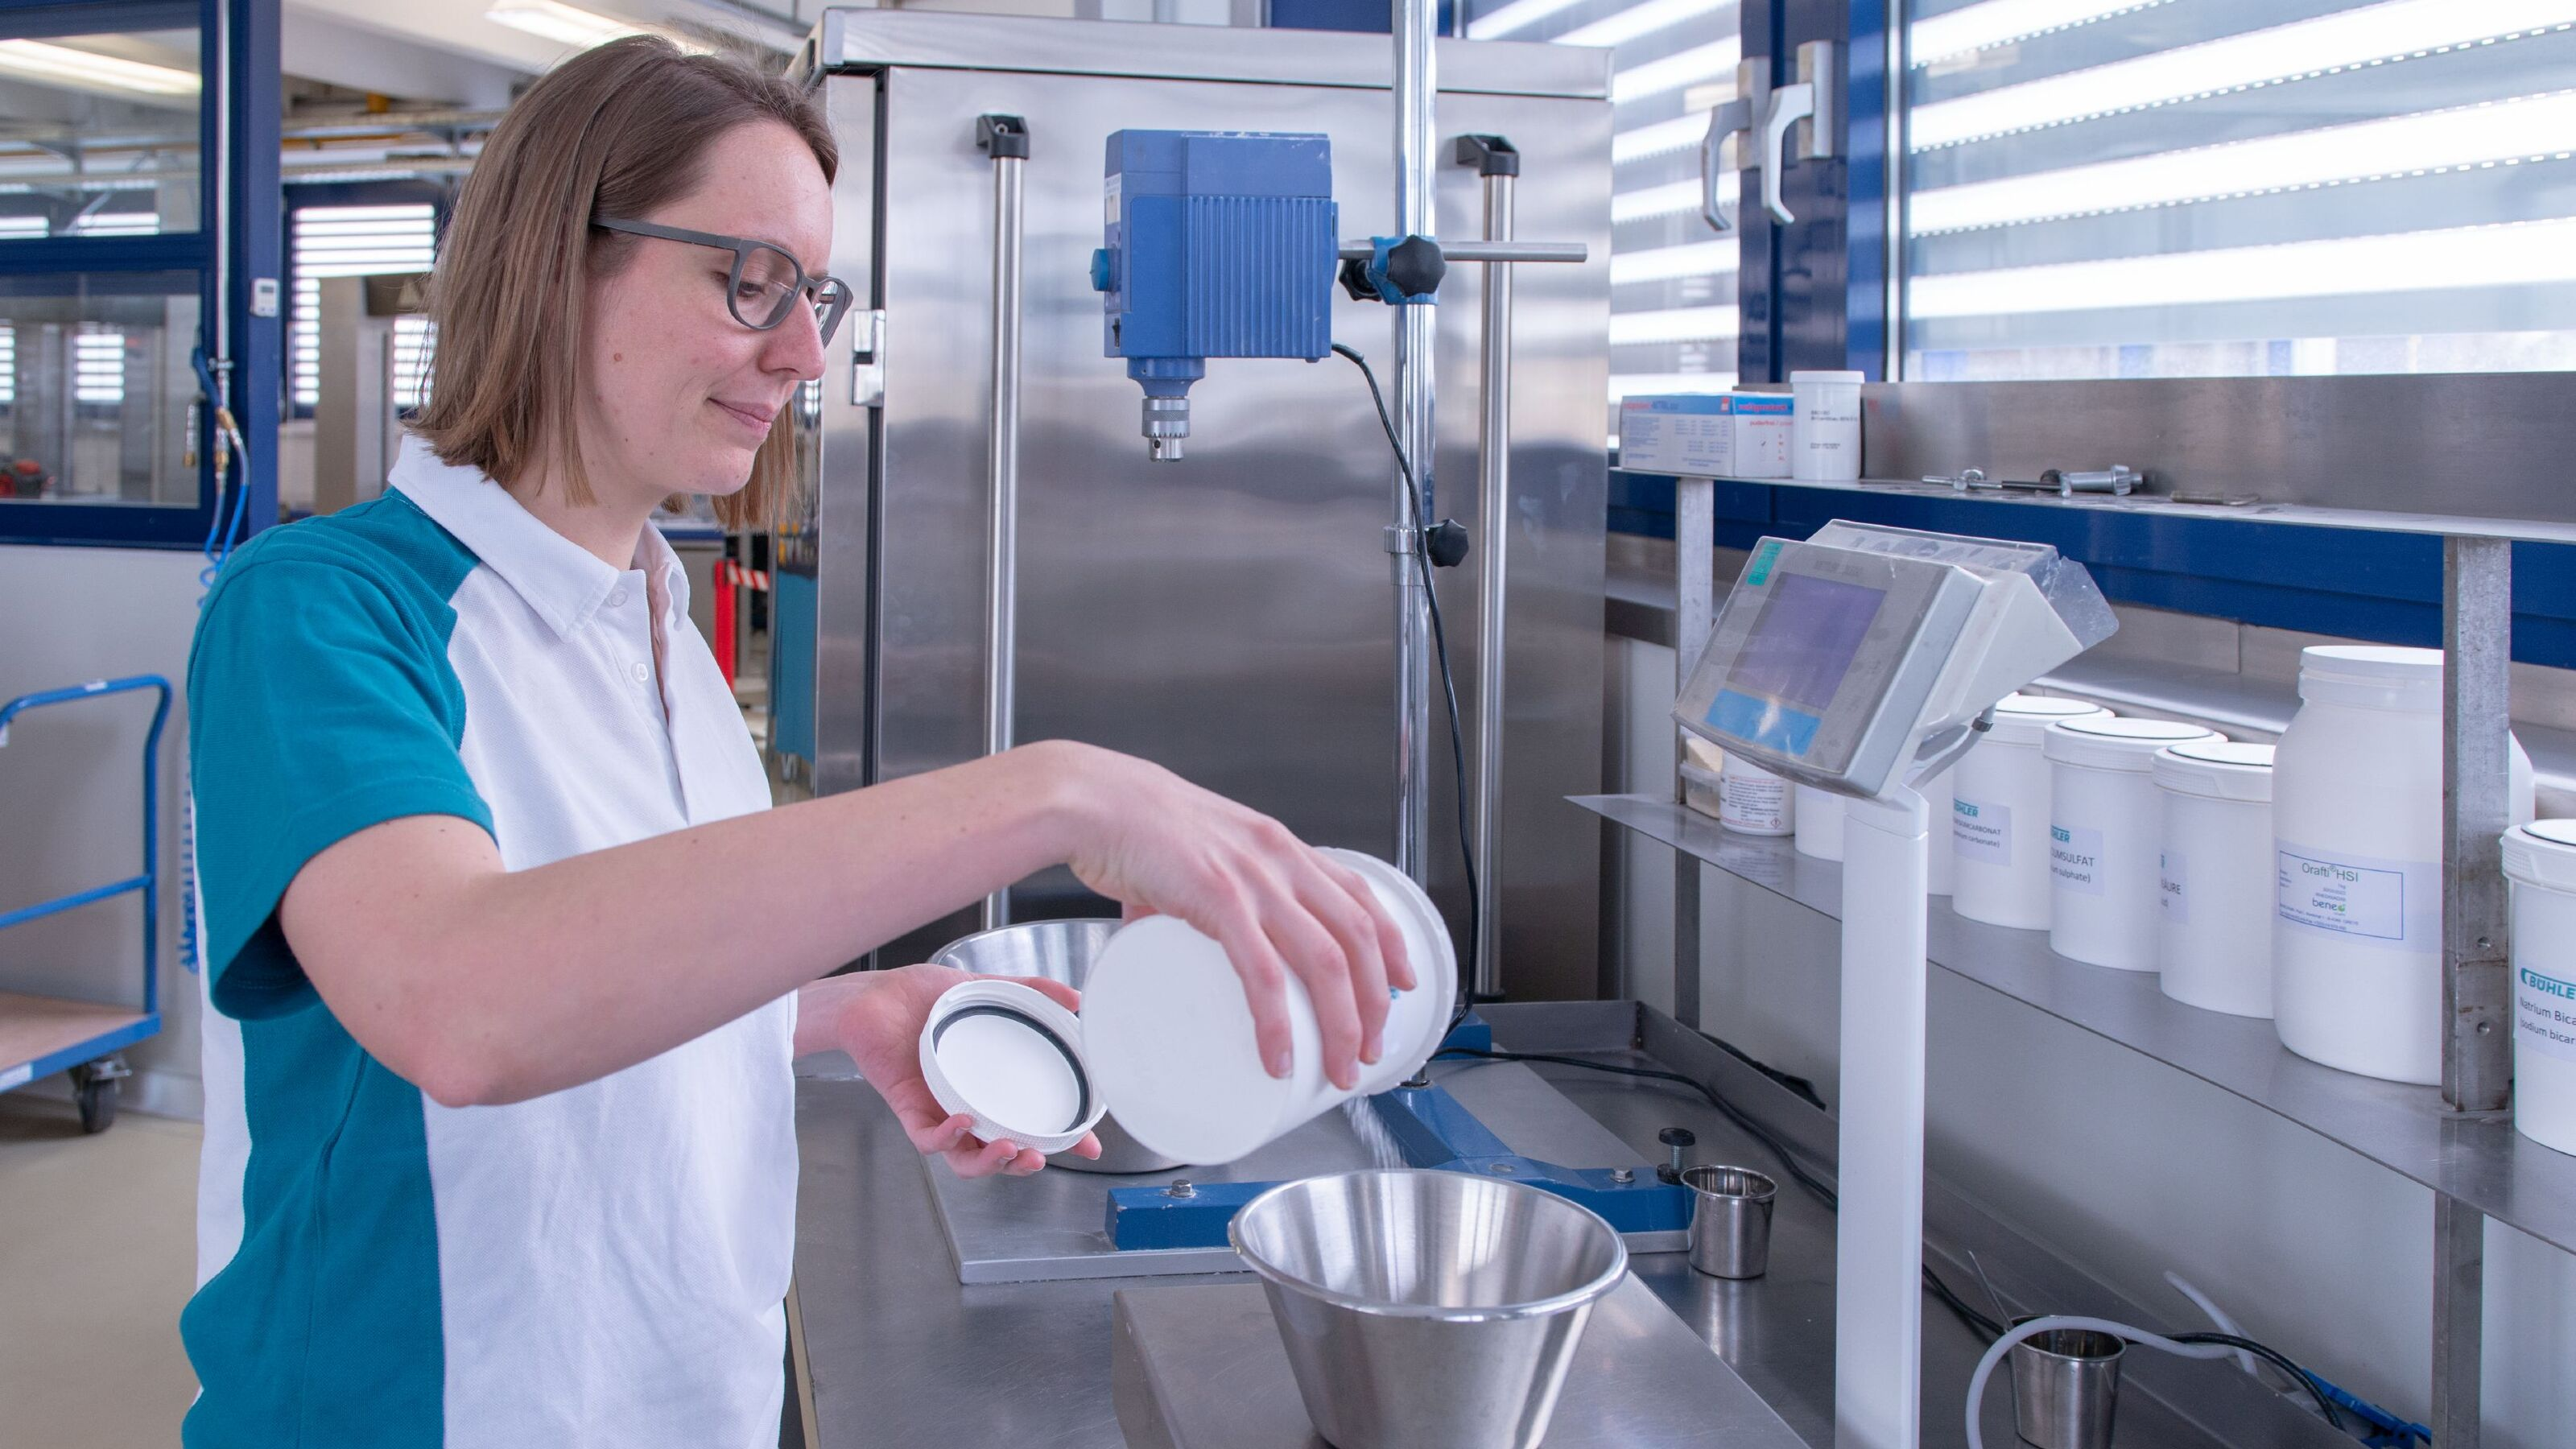 Bühler trainer and expert weighing ingredients.